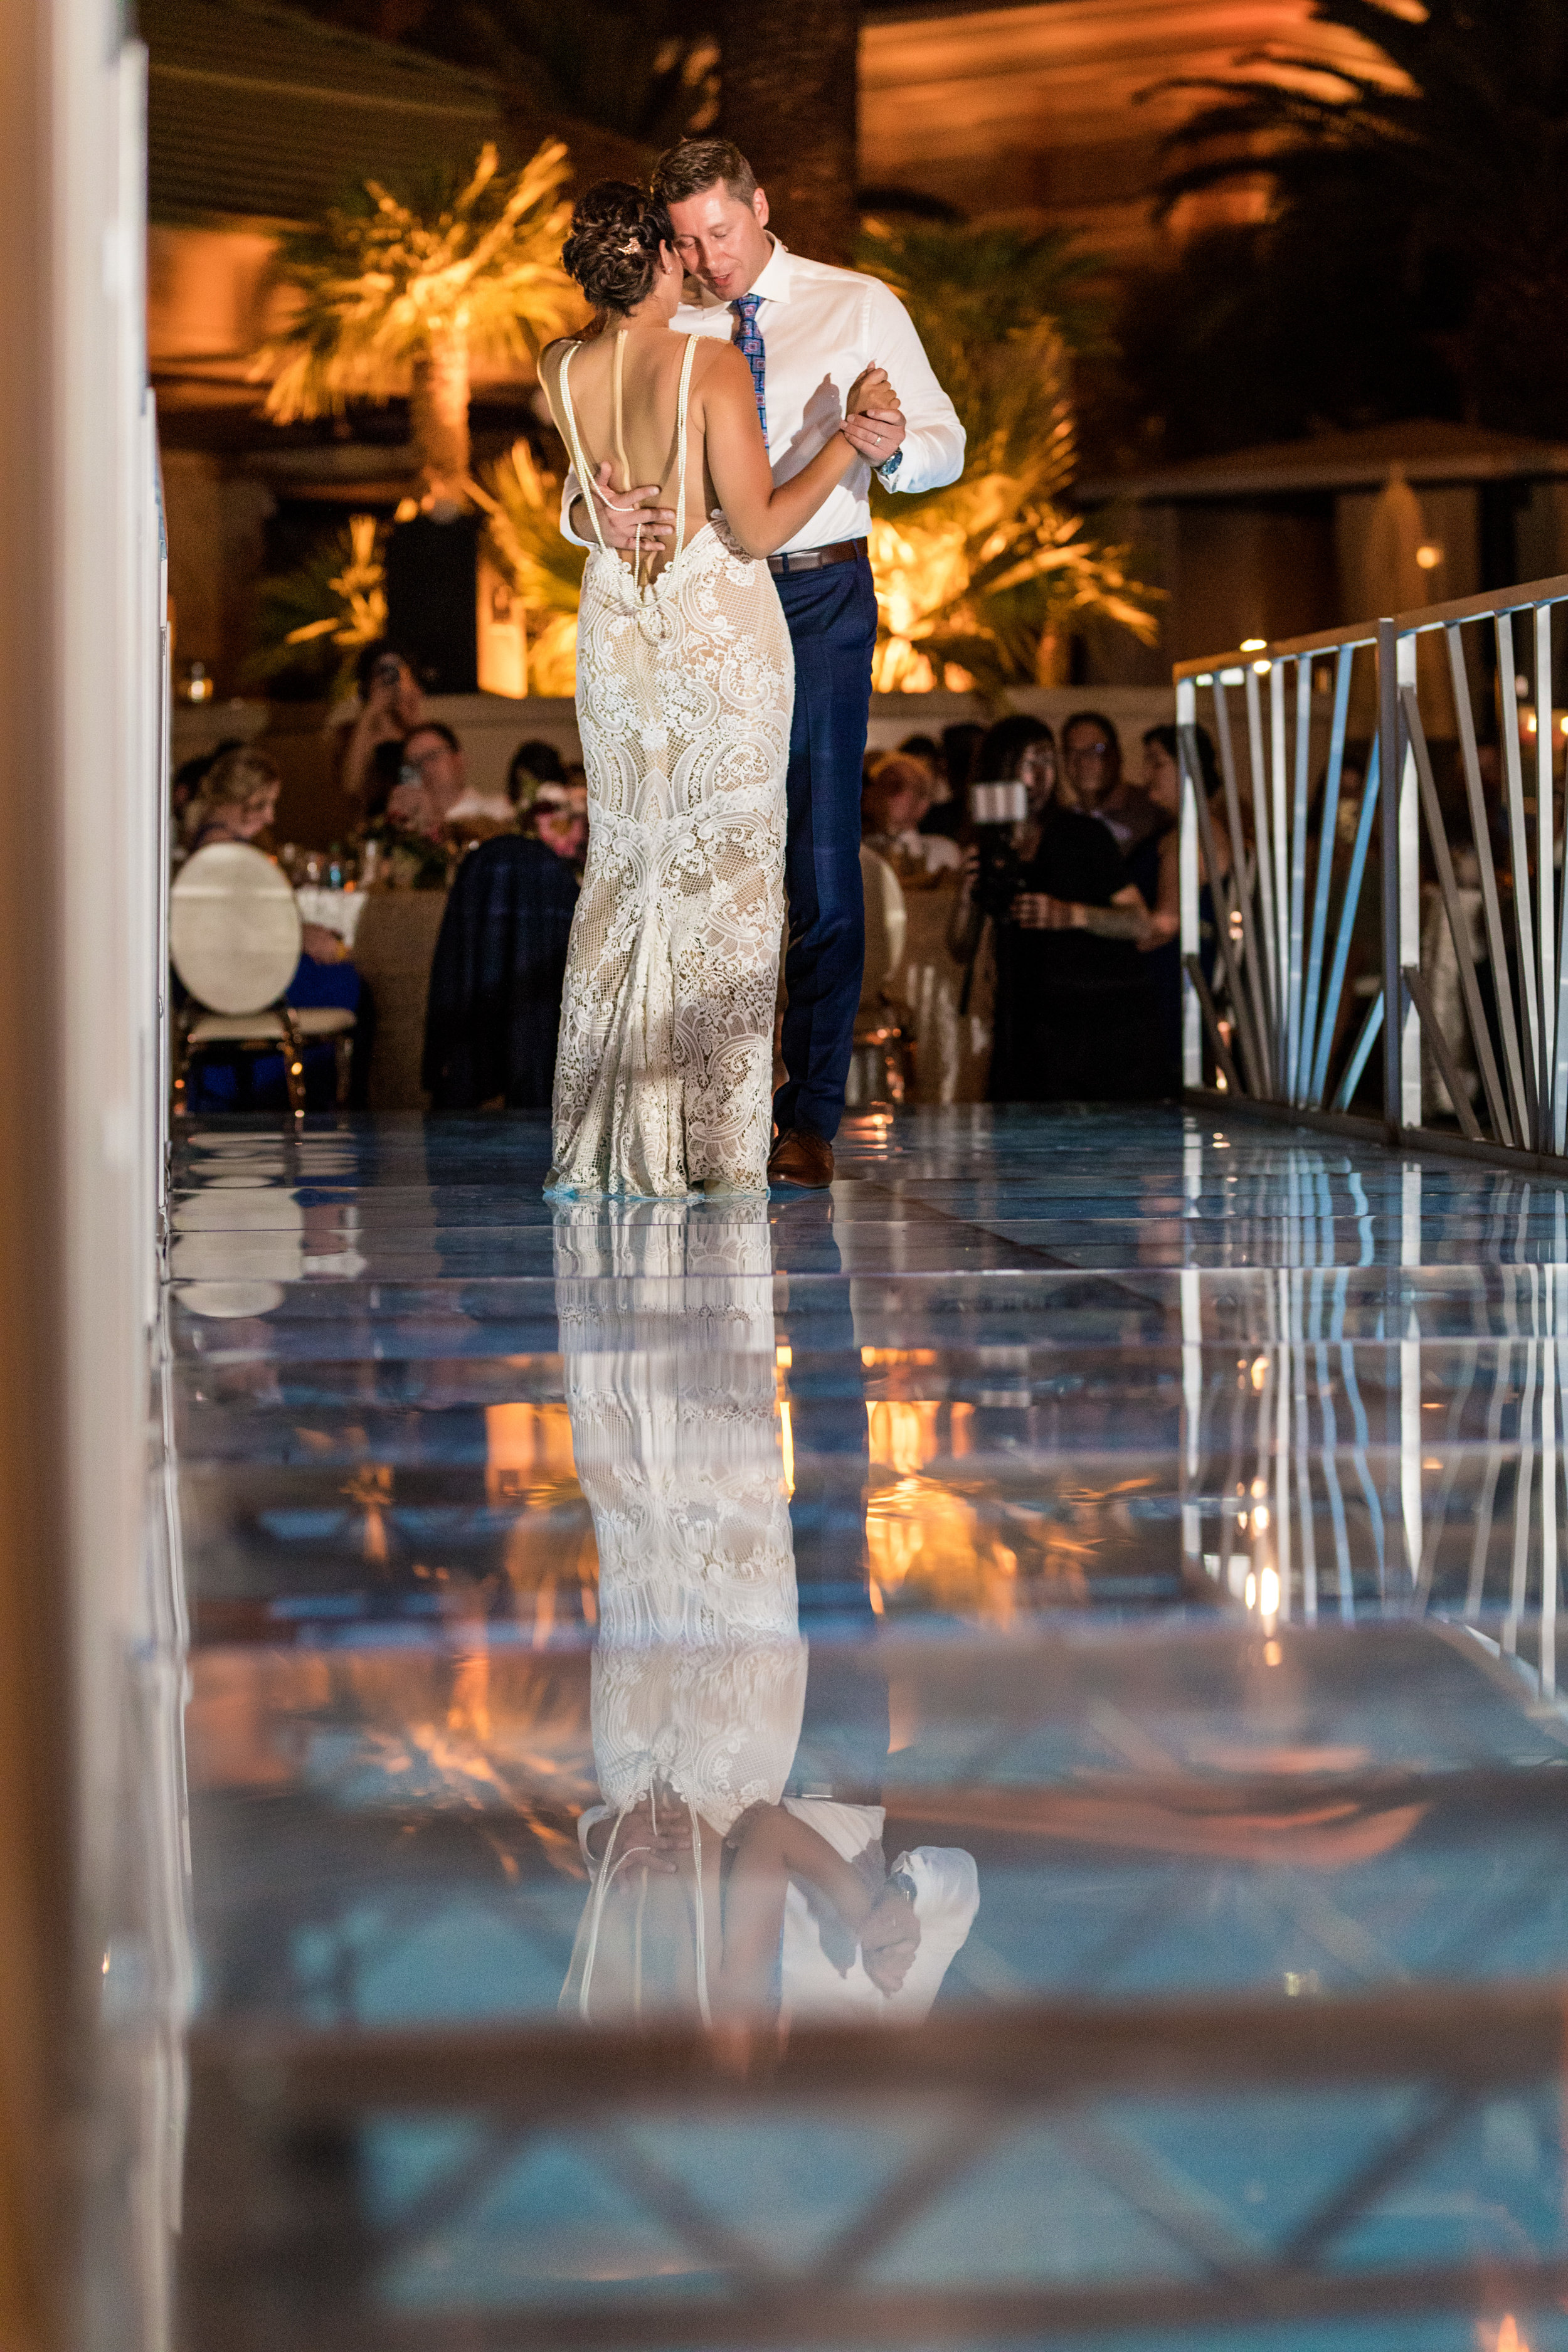 First Dance. First dance on bridge over pool.Jewel toned wedding centerpieces with gold accents.Wedding Planning by  Andrea Eppolito Events  · Photography by  Shandro Photo   · Wedding Venue  Four Seasons Las Vegas  · Floral and Decor by  Destination by Design  · Cake by  Four Seasons Las Vegas  · Chandeliers and Lighting by  LED Unplugged  · Dress by  Berta  and Menu by Alligator Soup